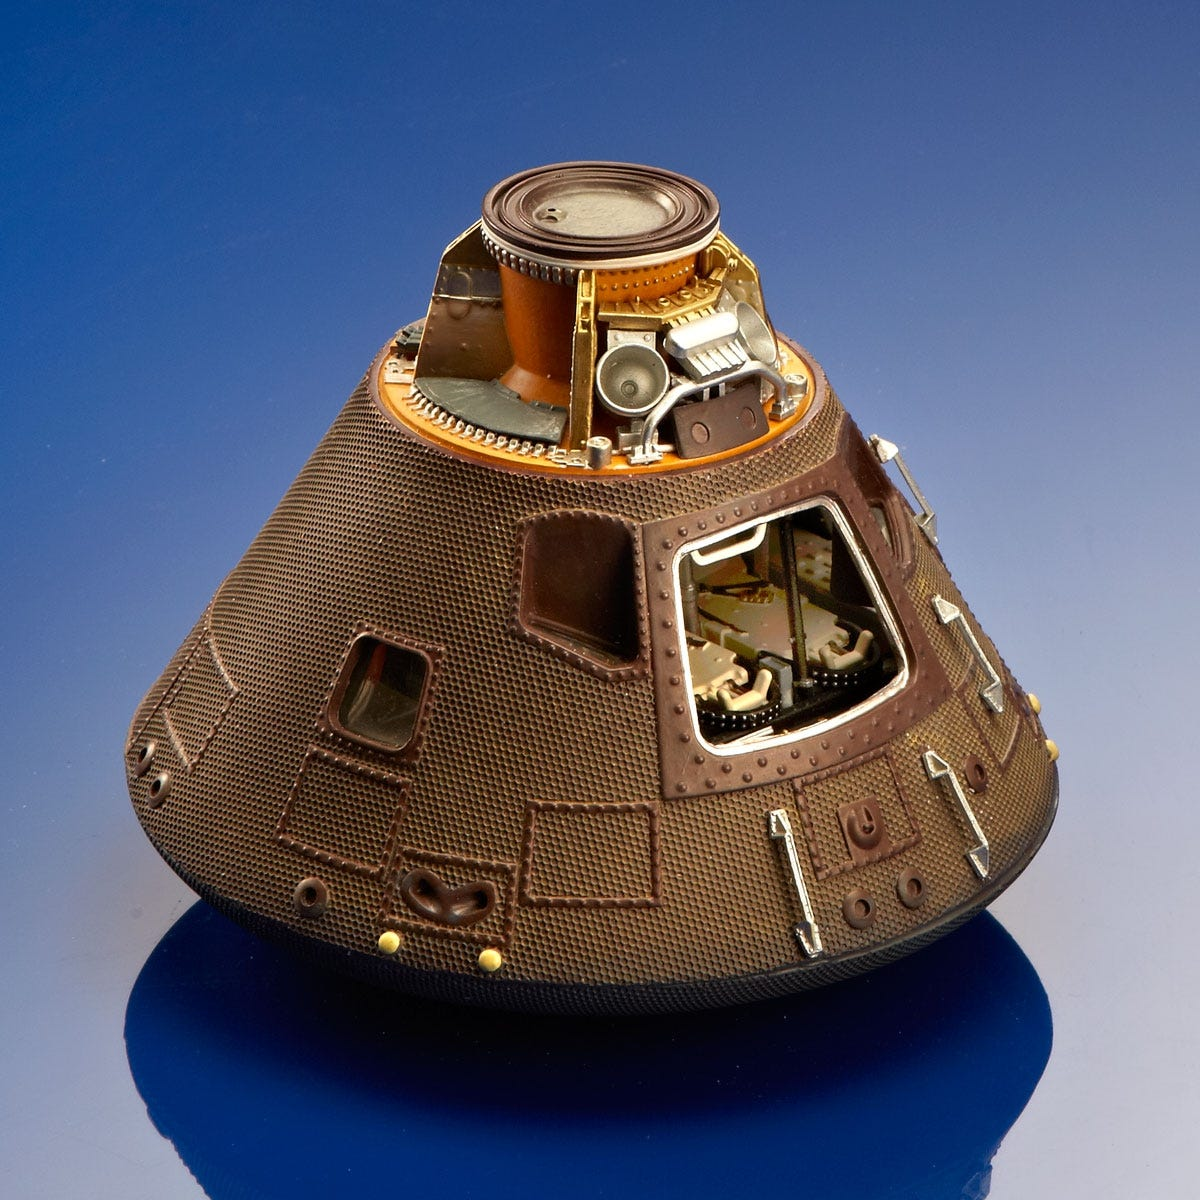 Apollo 11 Capsule Display Model - from Sporty's Wright Bros Collection